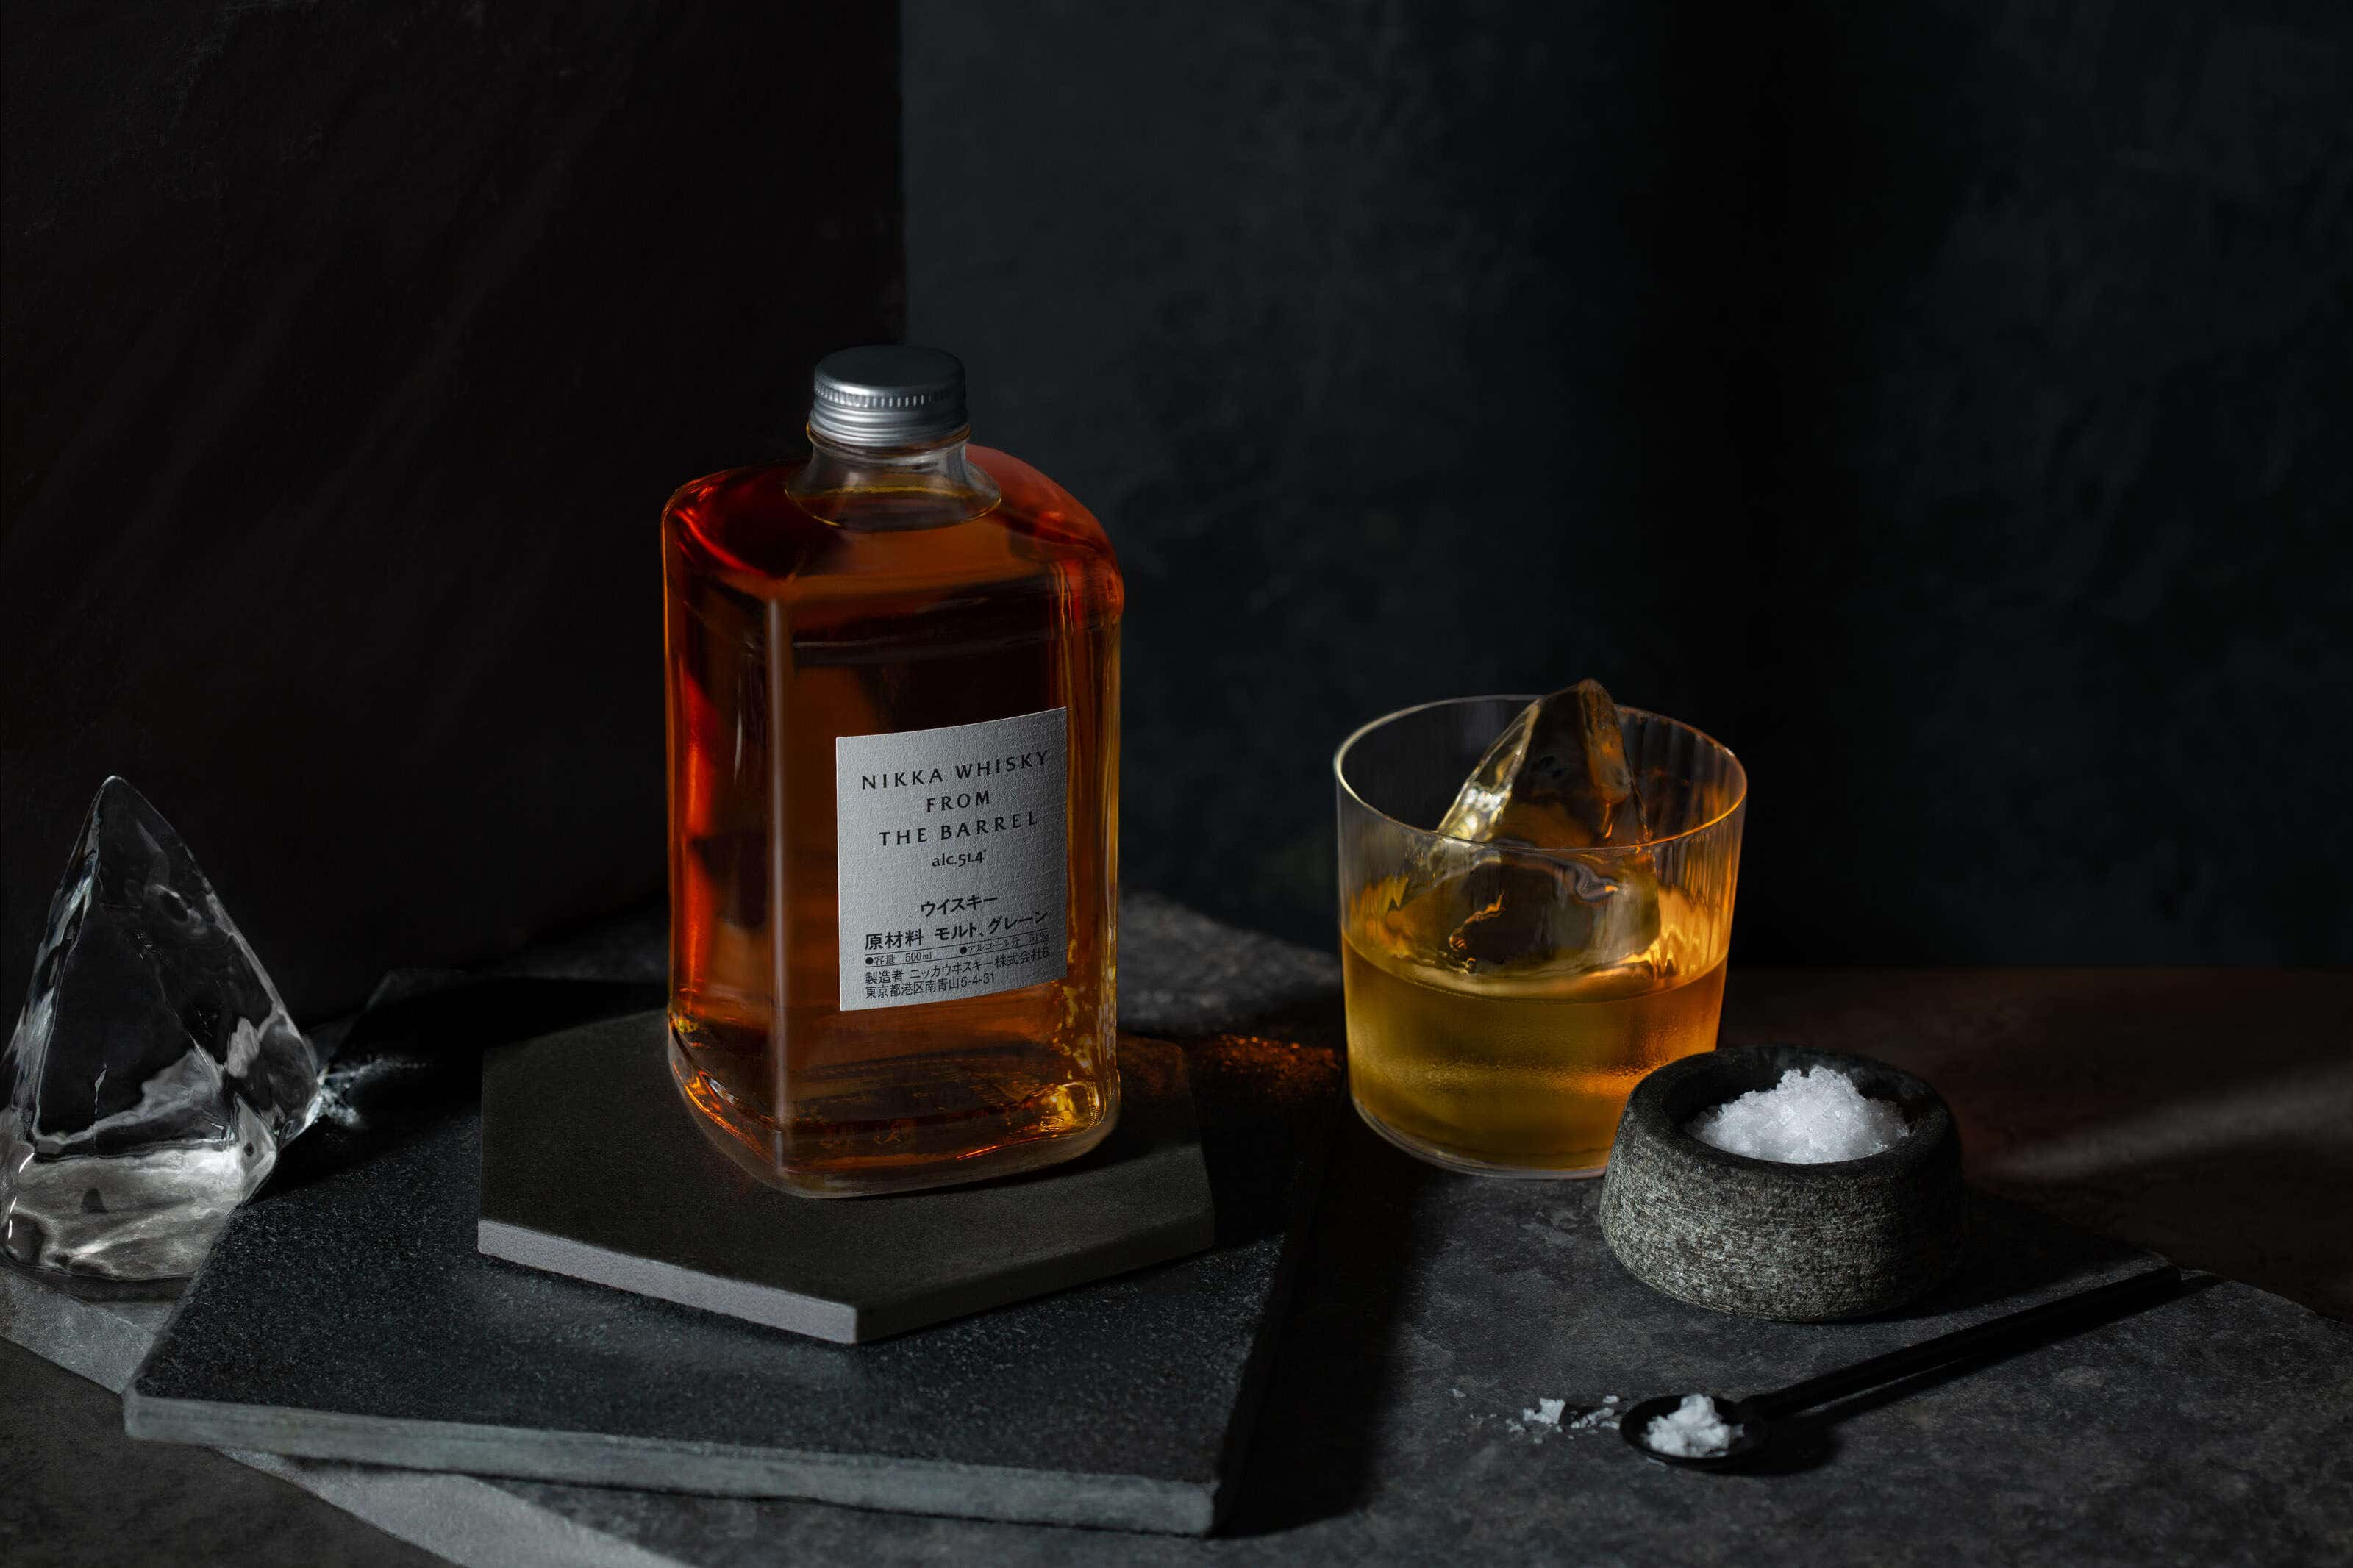 Nikka whisky in a bottle with a glass next to it with large pieces of ice